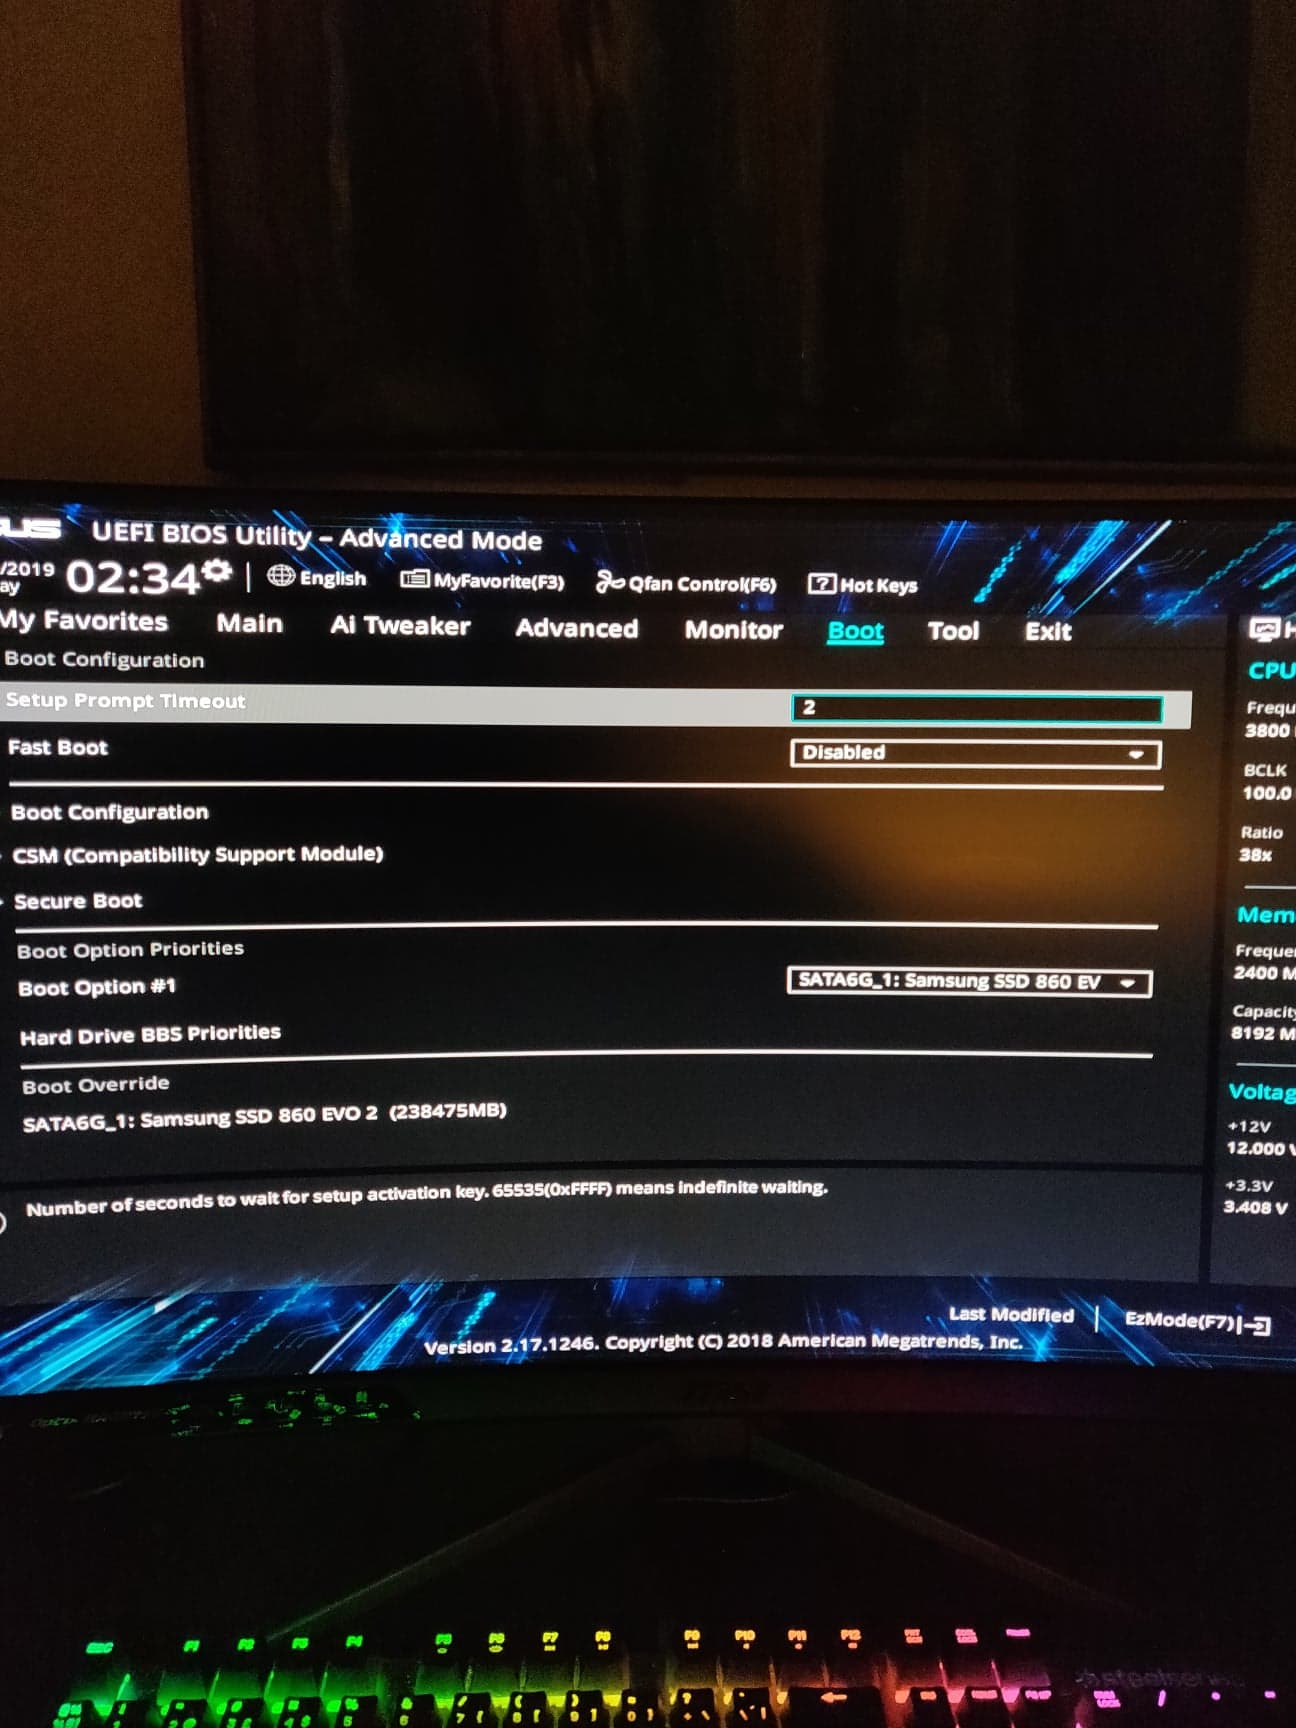 Can't install windows 10 on my SSD samsung evo 860 - 250GB